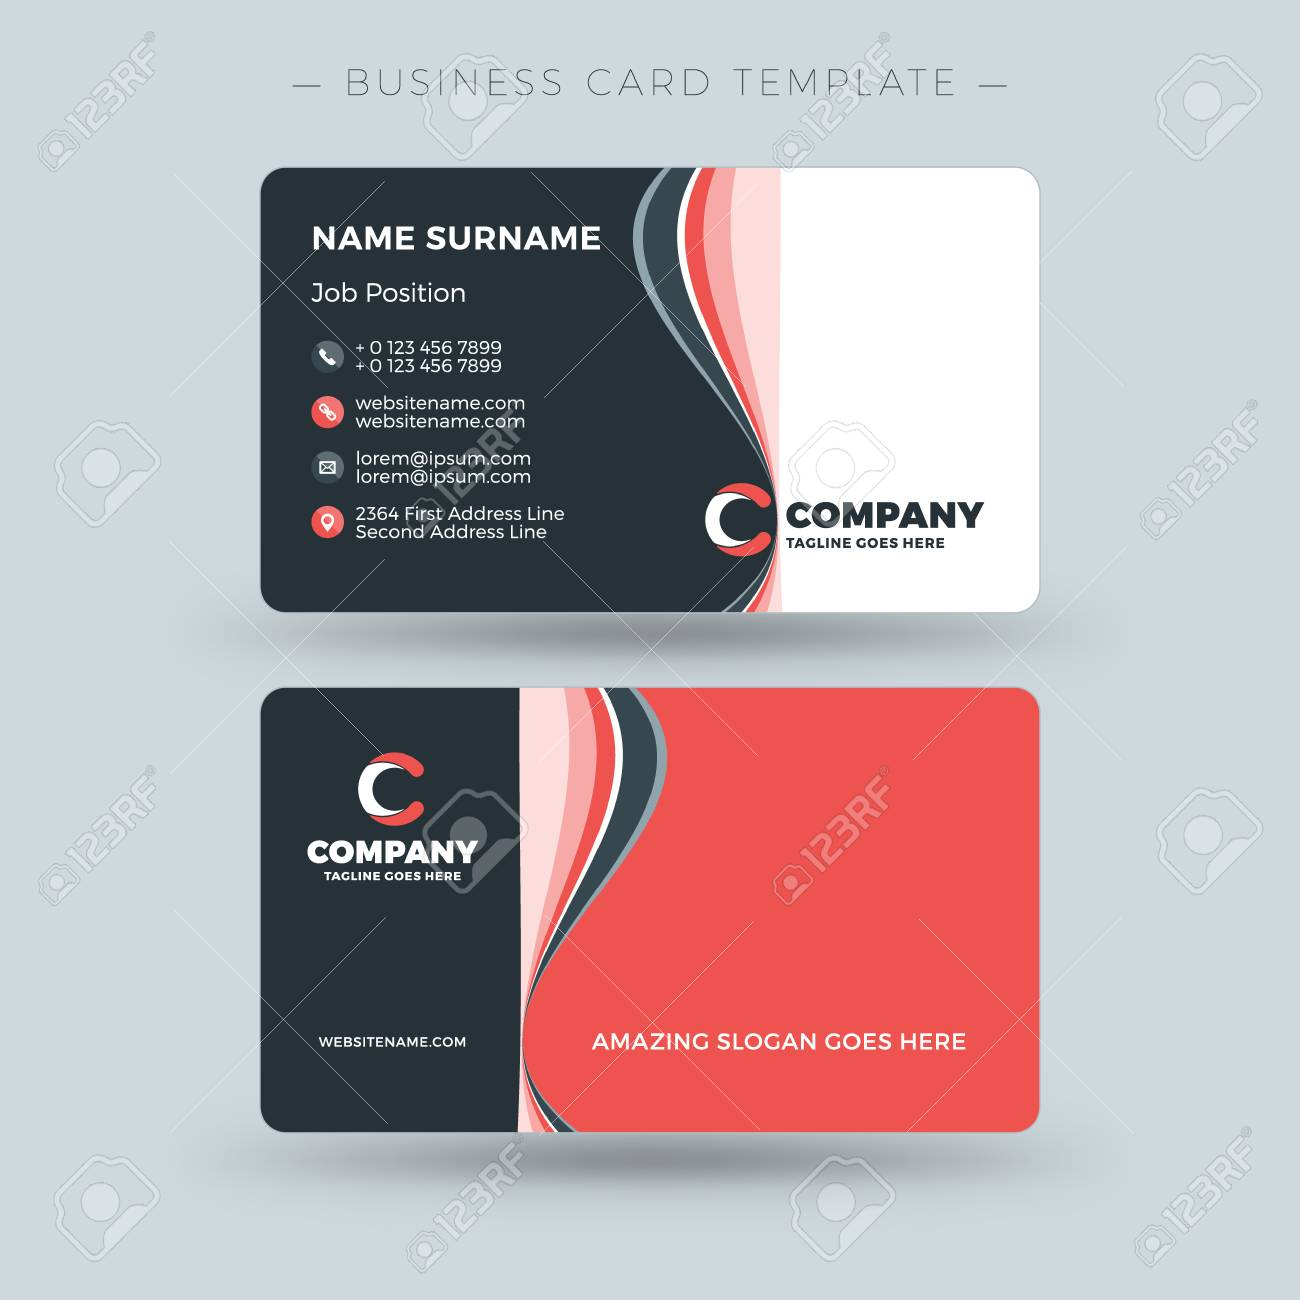 Double sided business card template with abstract red and black double sided business card template with abstract red and black waves background vector illustration cheaphphosting Gallery